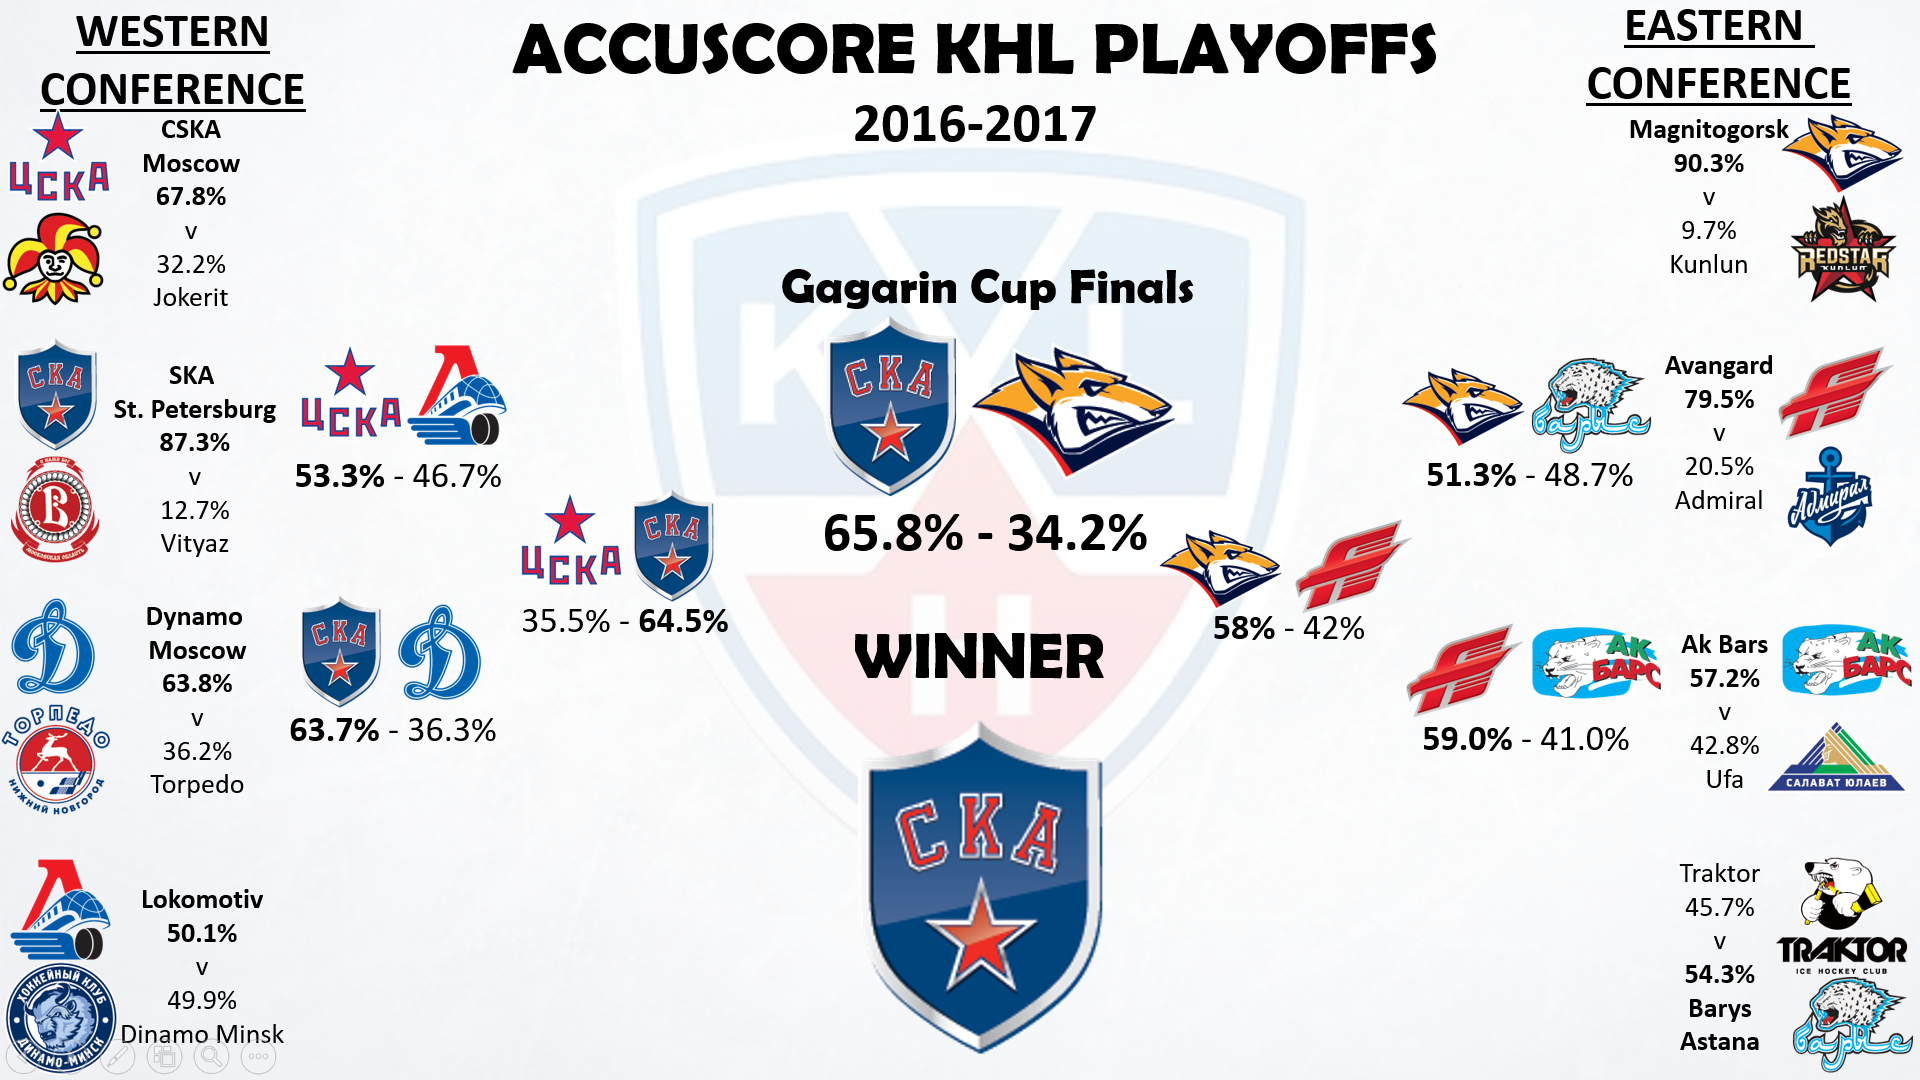 Accuscore's KHL Playoffs Prediction for season 2016-2017